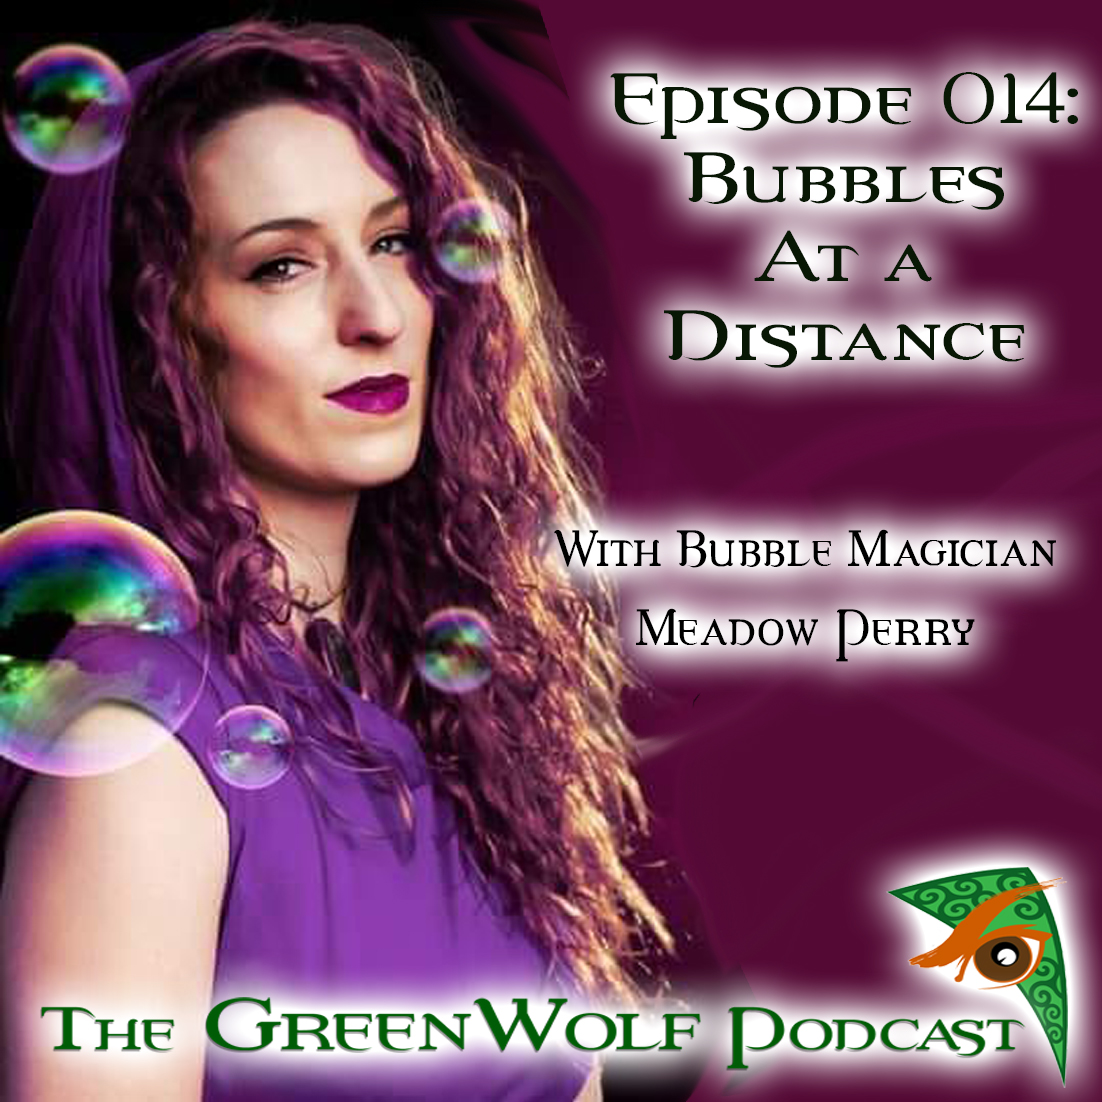 The GreenWolf Podcast - Ep 014- Bubbles at a Distance with Bubble Magician Meadow Perry